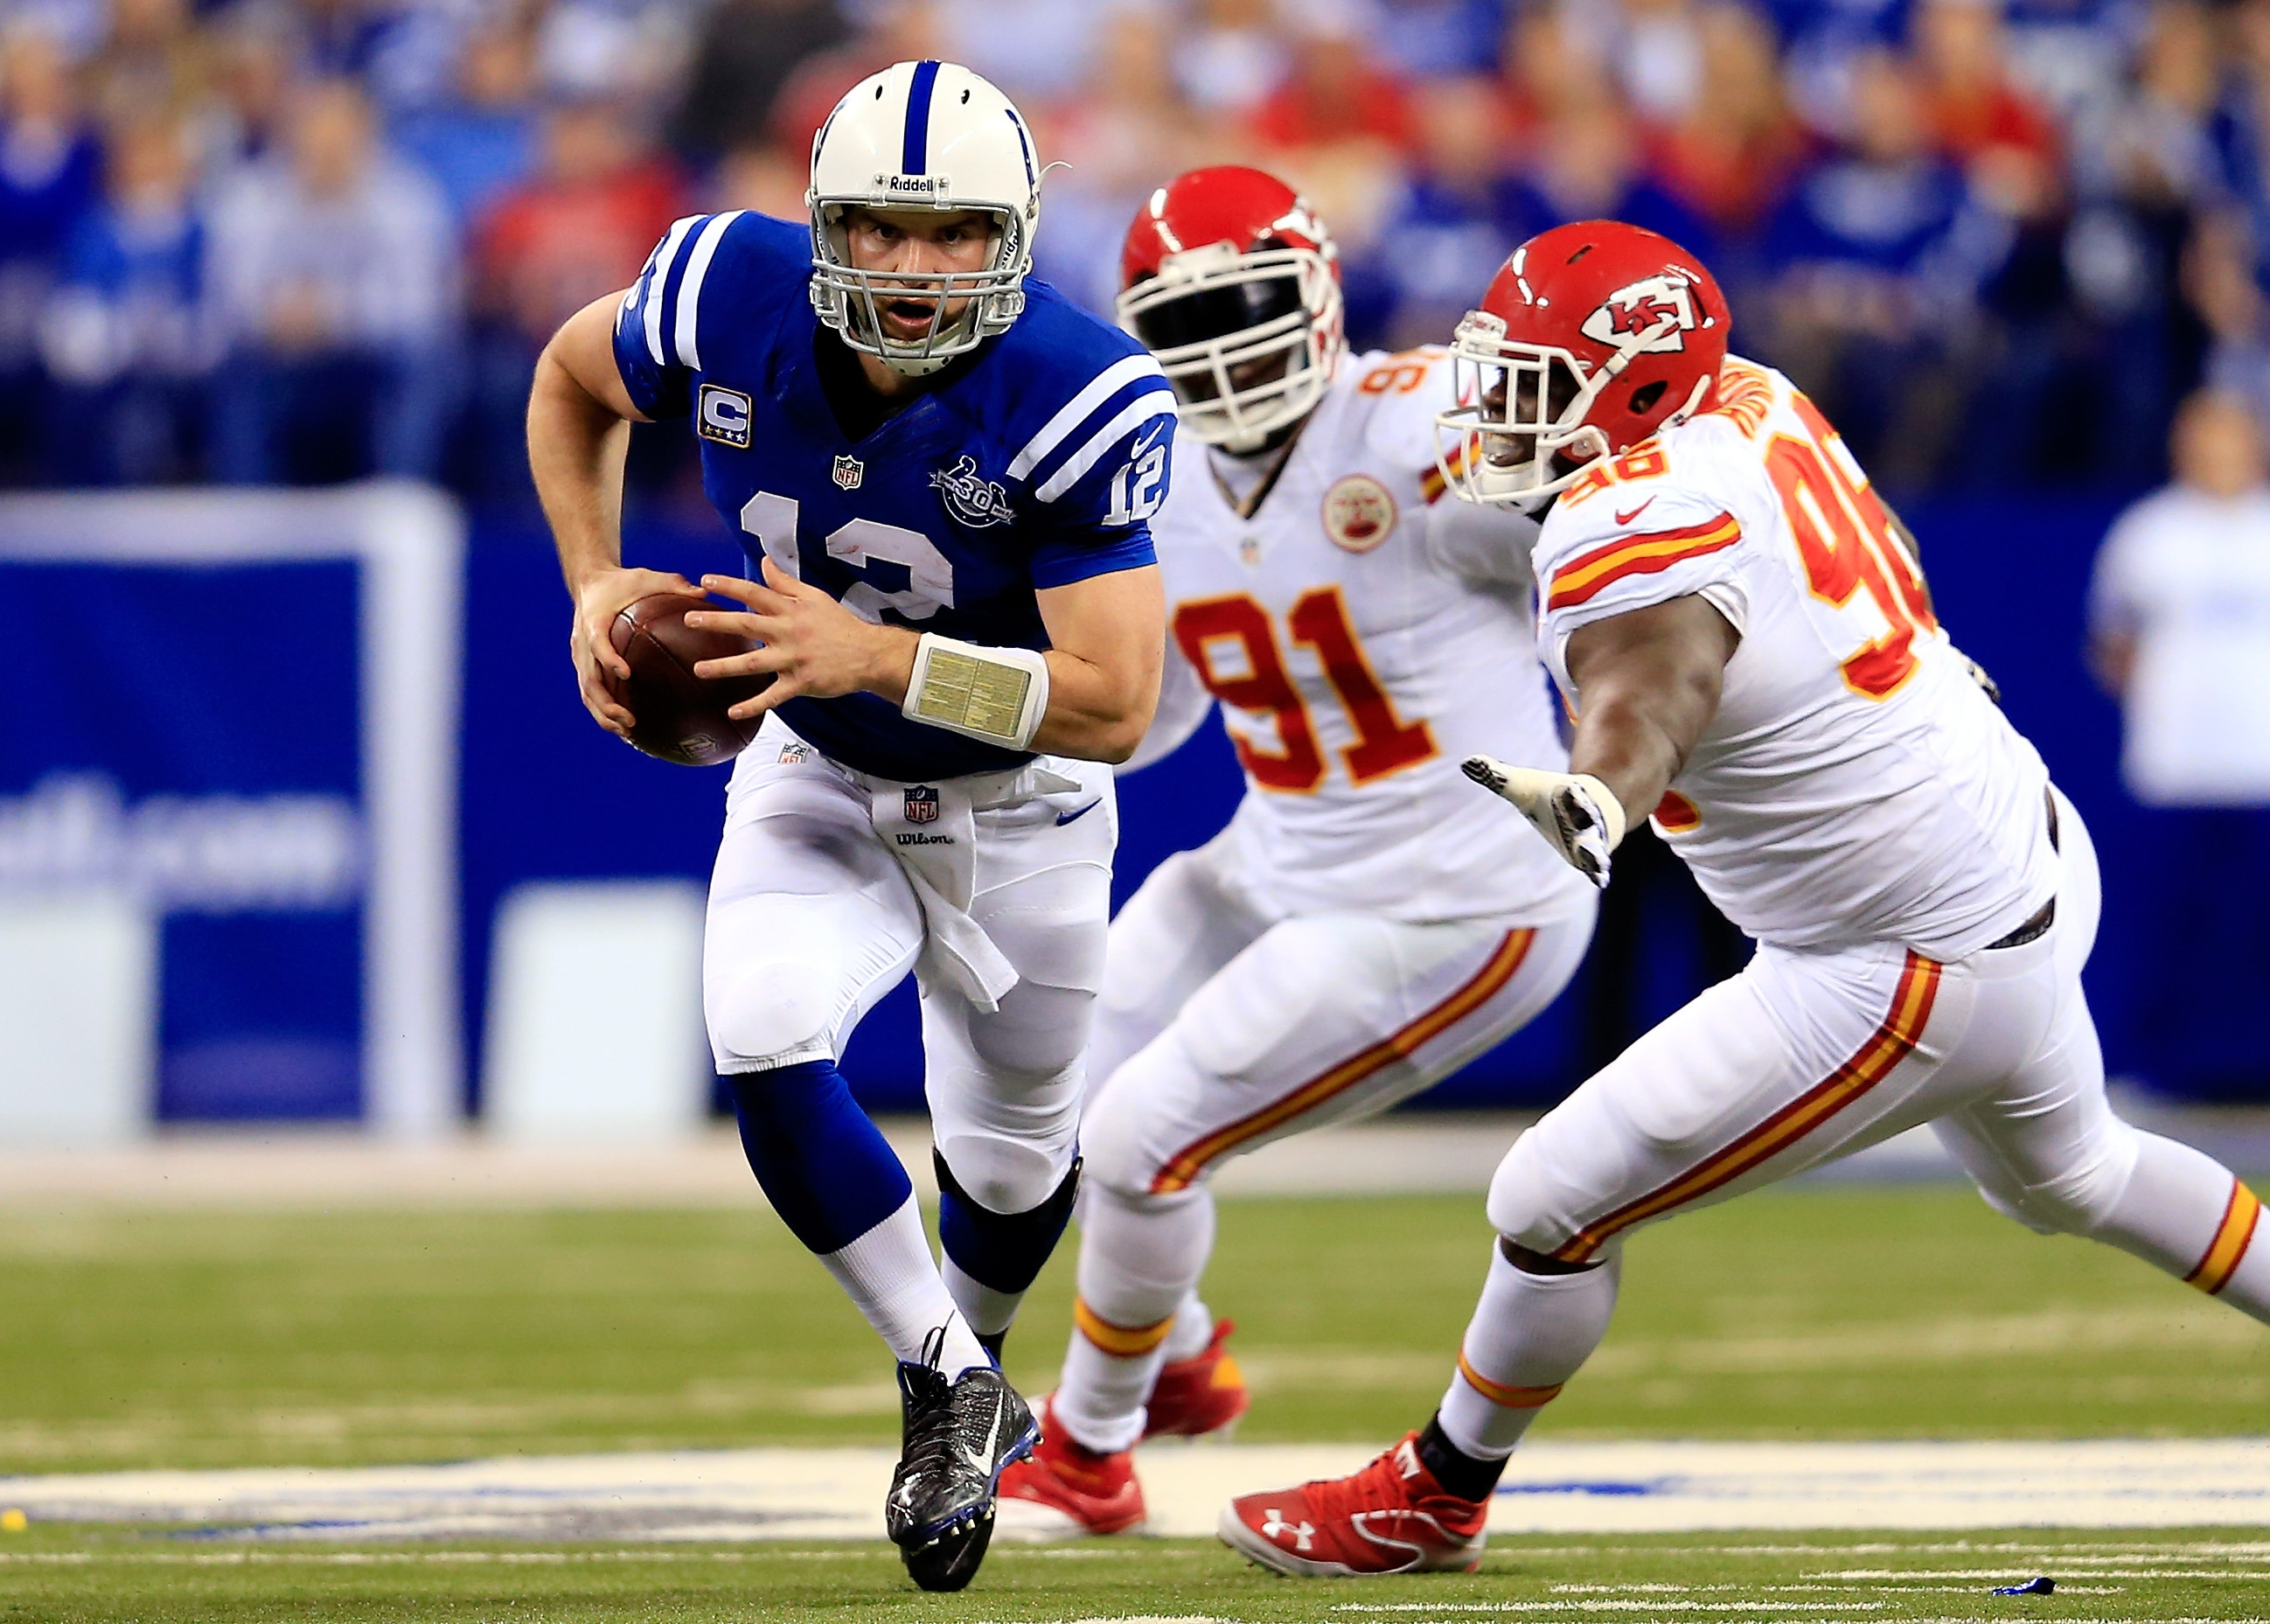 Andrew Luck of the Indianapolis Colts mounted a Frank Reich-like comeback in Wild Card Playoff game win over the Kansas City Chiefs on Saturday.